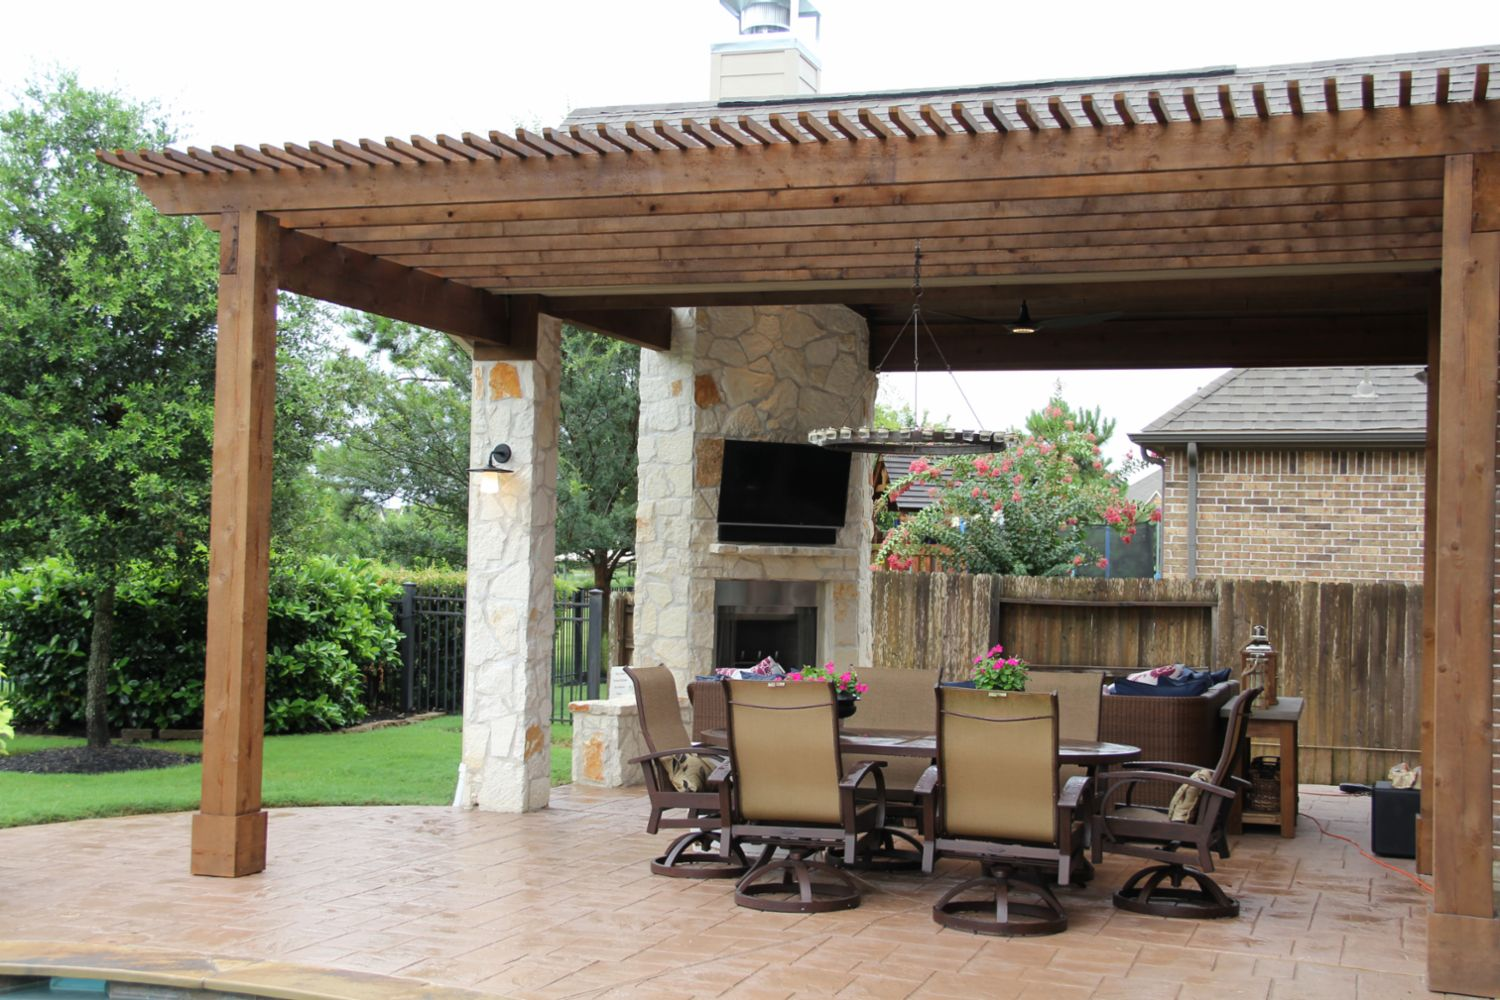 Patio covers outdoor kitchens fire features in katy tx for Design patio exterieur